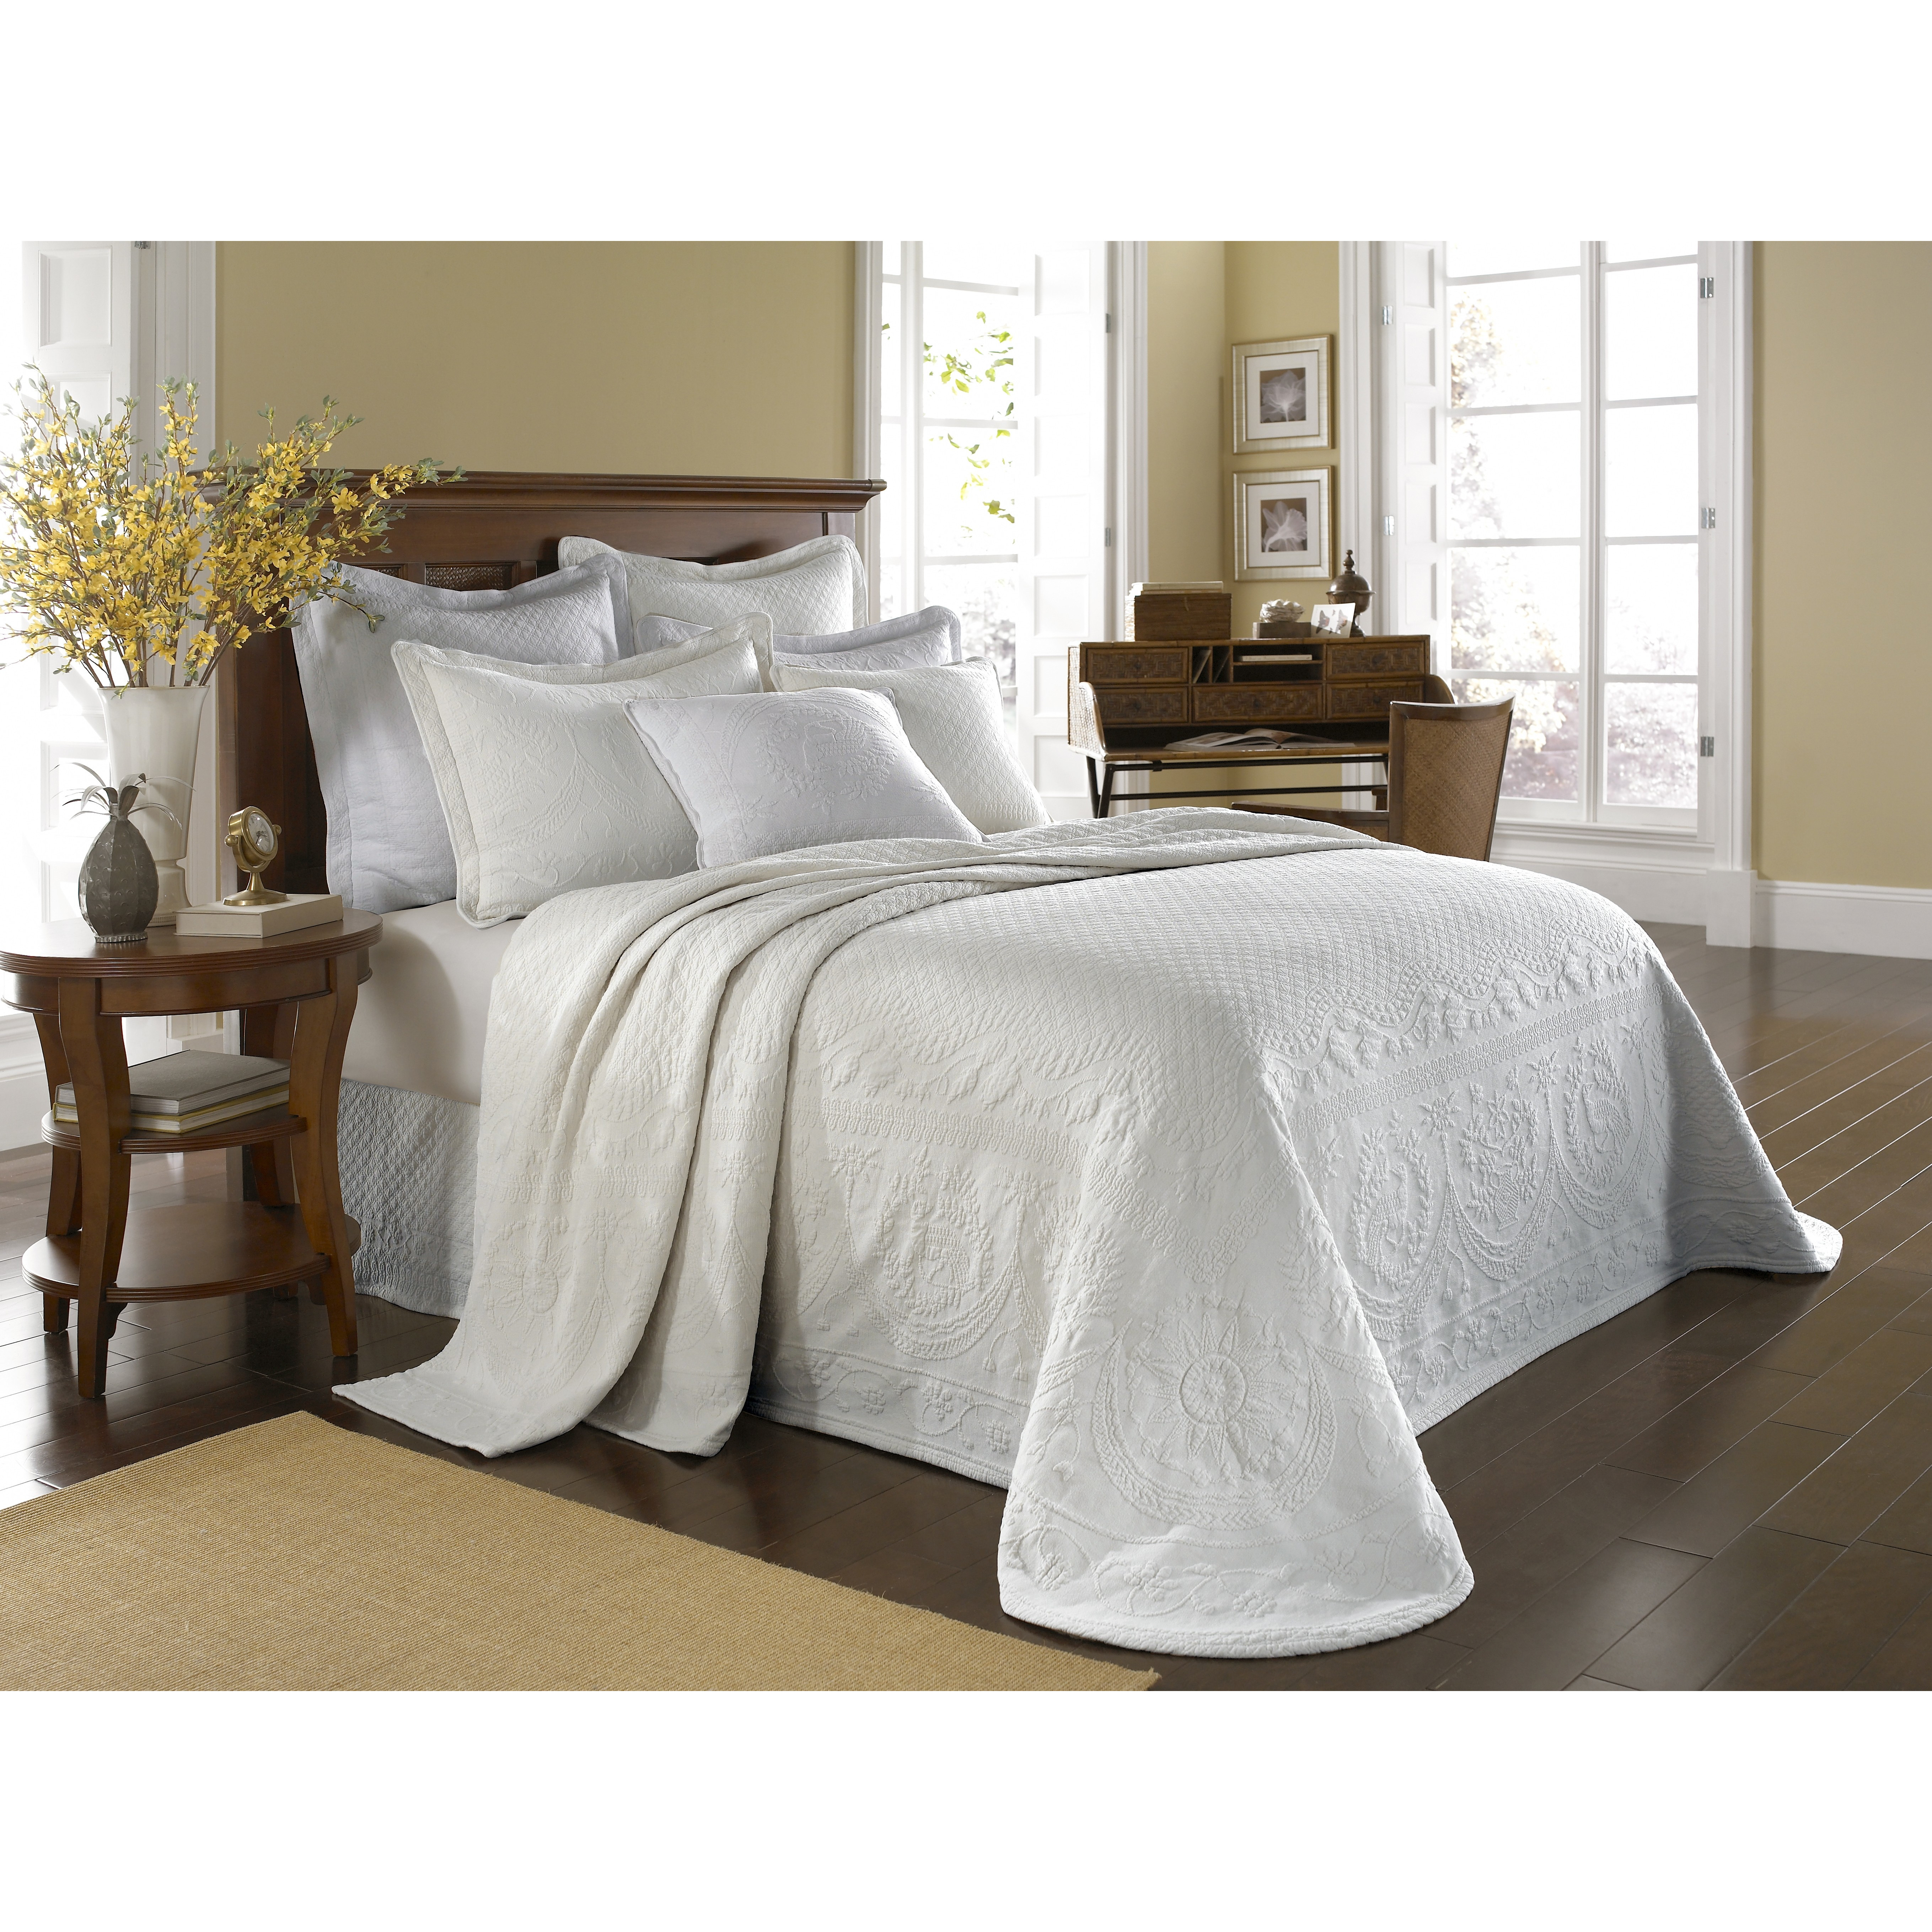 Bedroom: Matelasse Bedspreads | Chenille Bedspreads King Size ... : king size quilted bedspread - Adamdwight.com